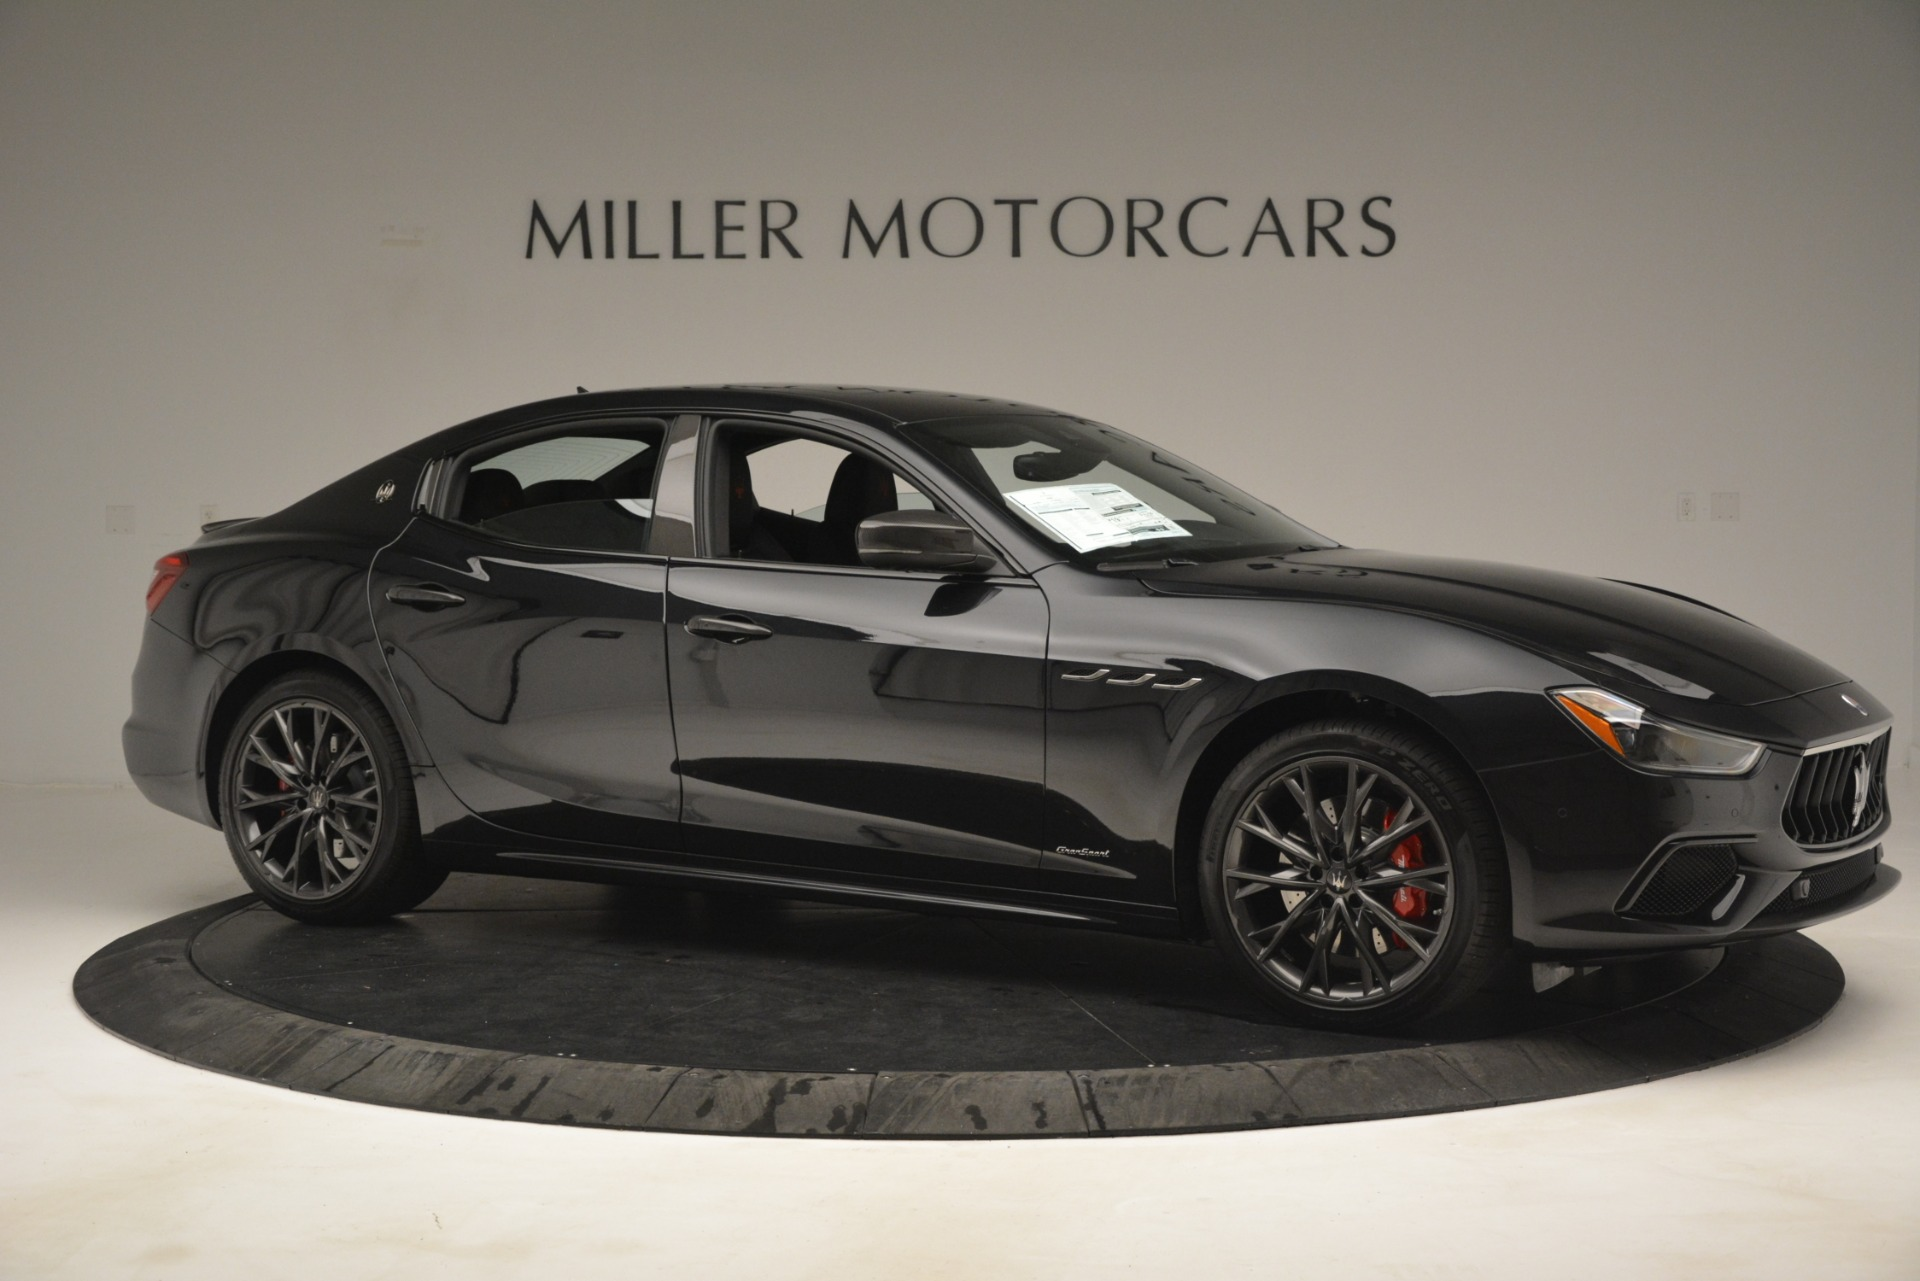 New 2019 Maserati Ghibli S Q4 GranSport For Sale In Westport, CT 2924_p10